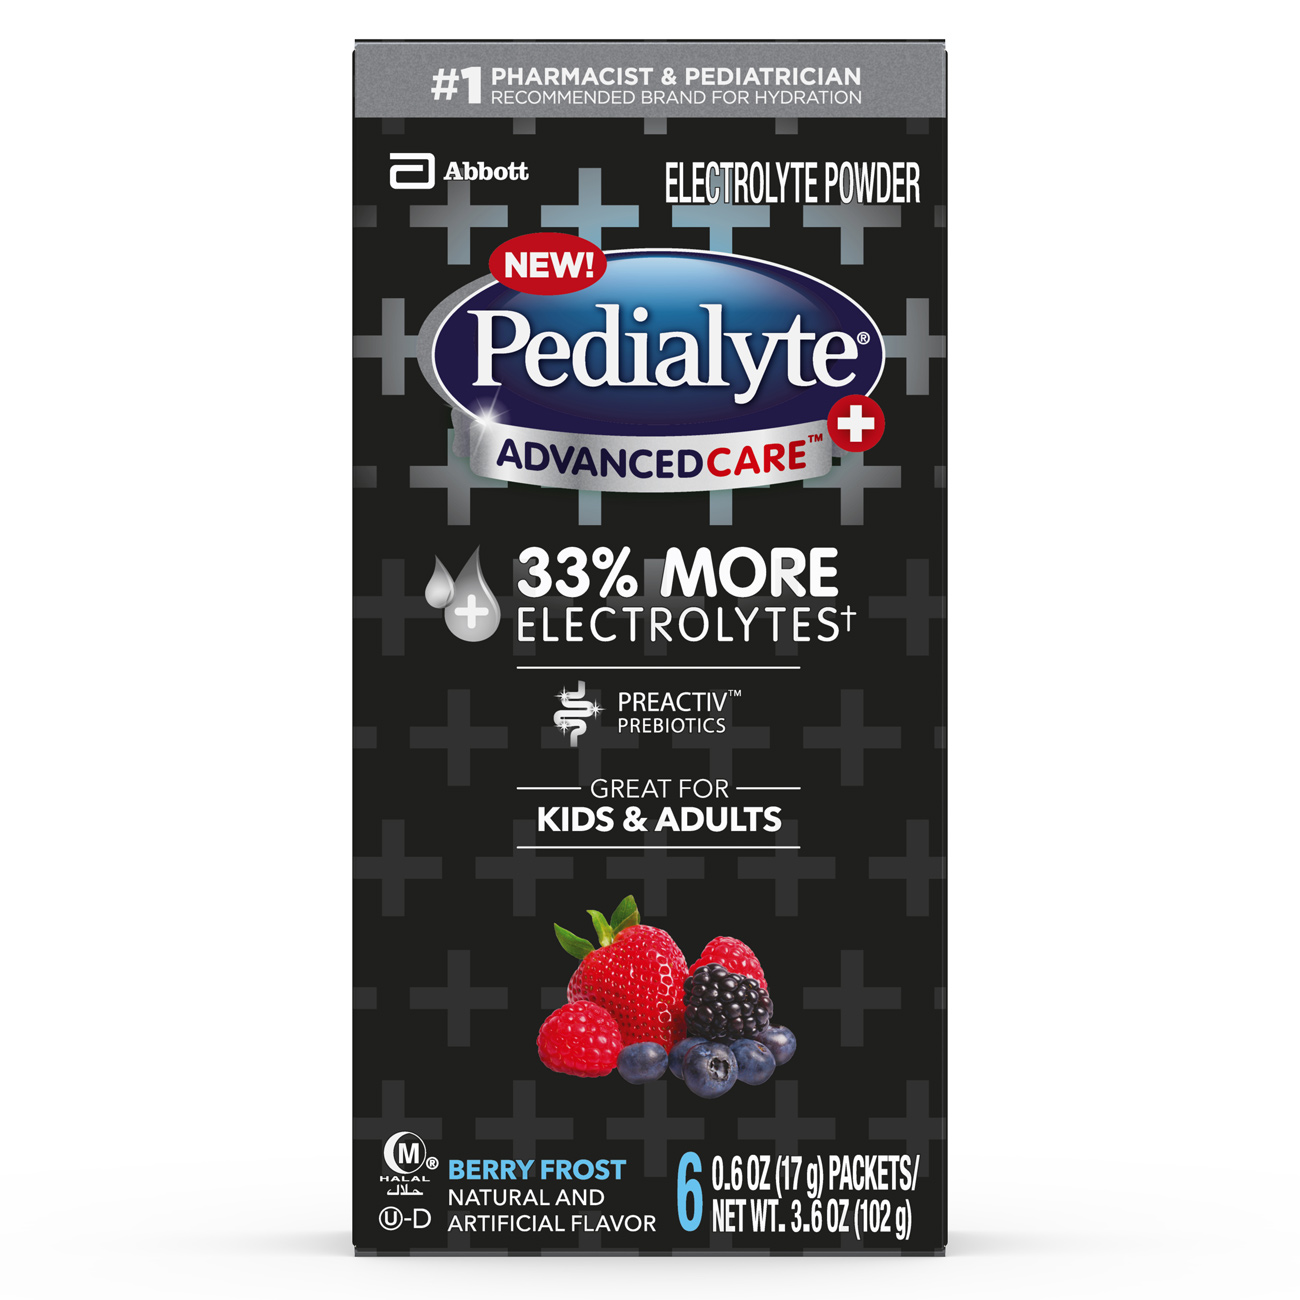 Pedialyte AdvancedCare Plus Electrolyte Powder Berry Frost 0.6 oz Powder Packs (Pack of 6)